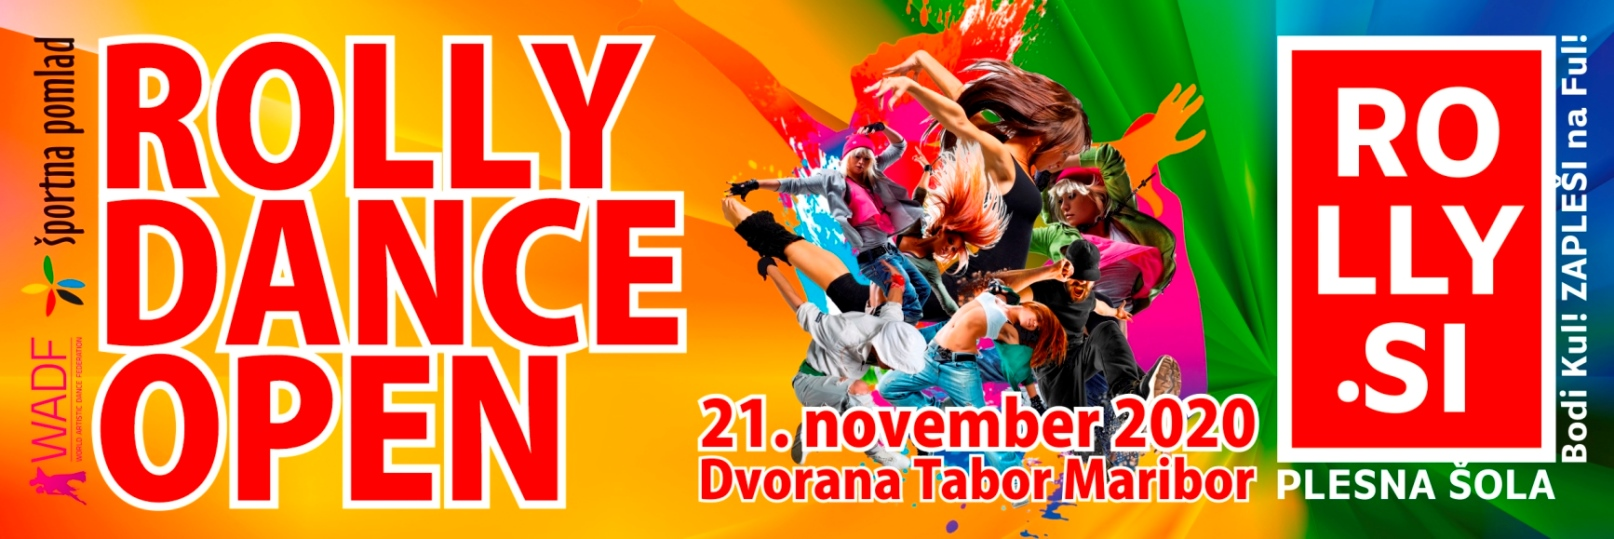 Rolly Dance Open 2020 banner 210 x 70